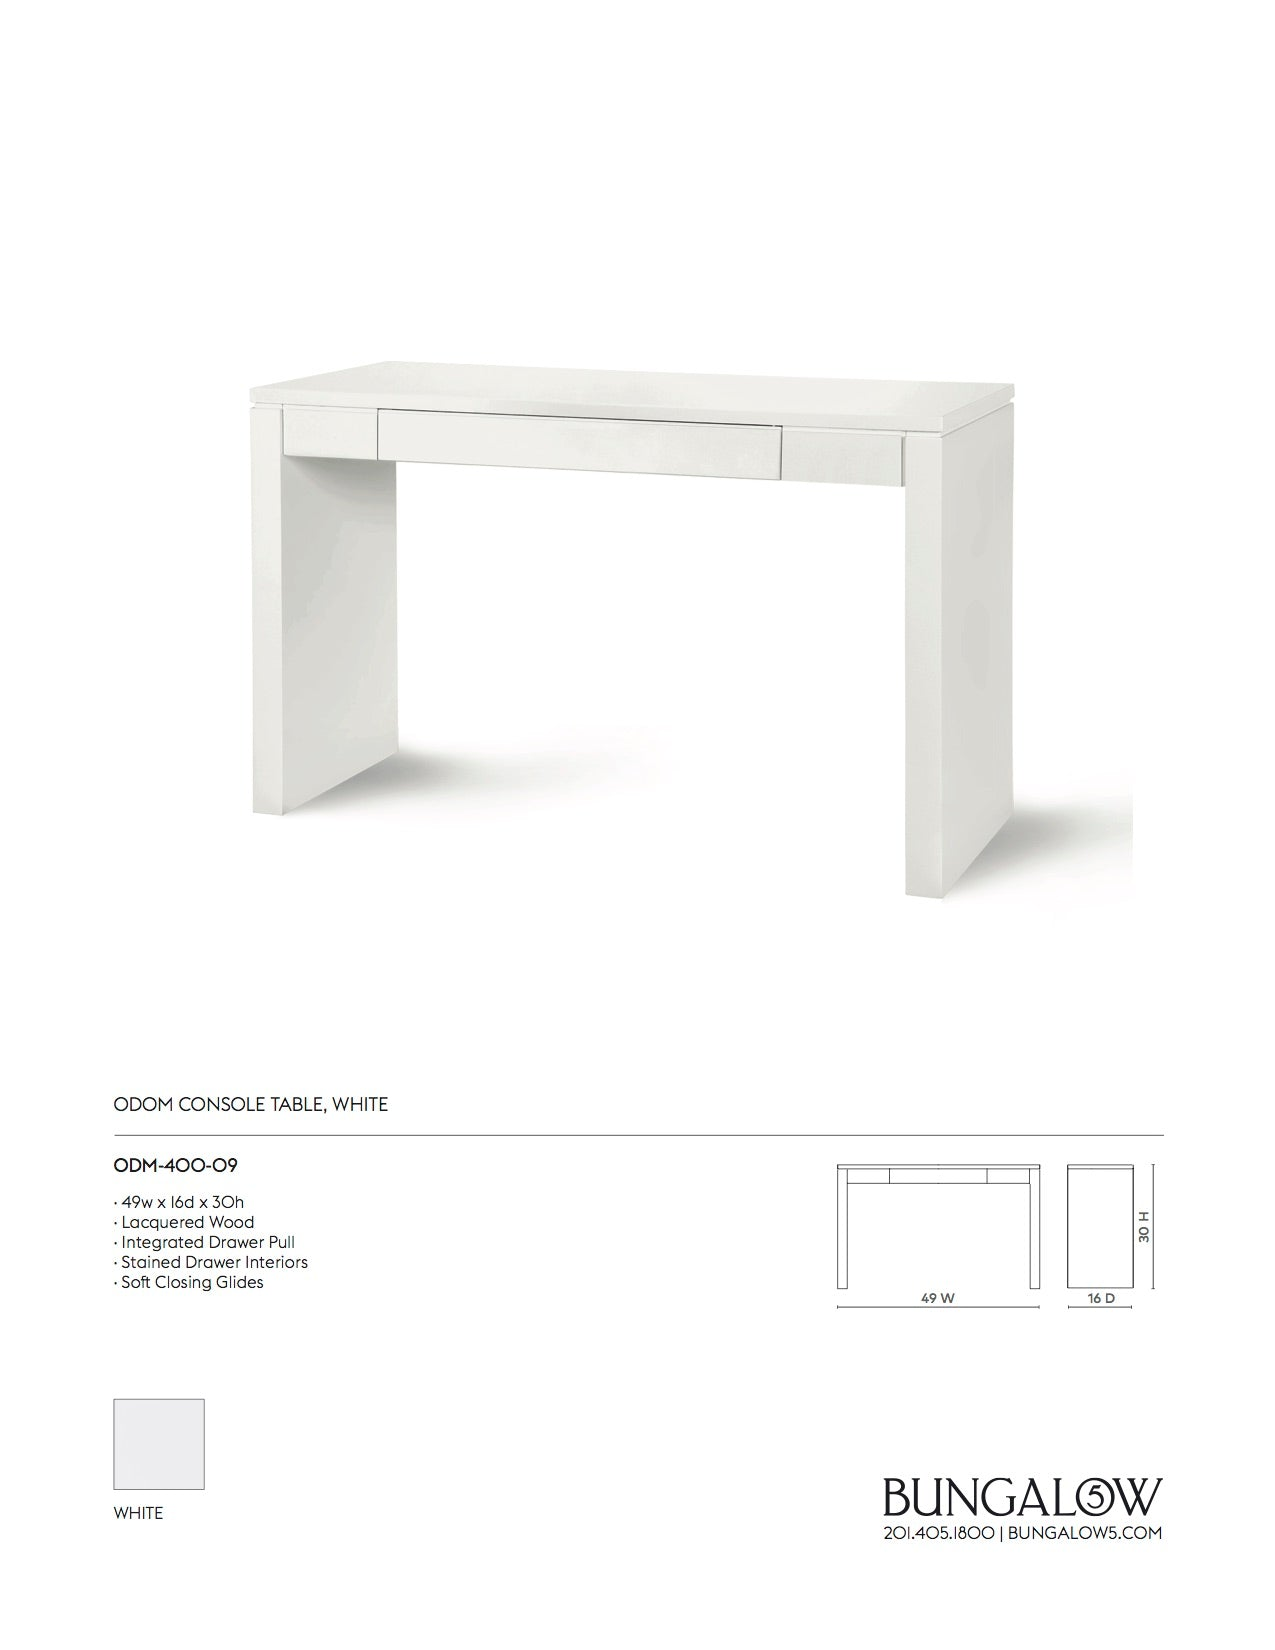 Bungalow 5 Odom Console Table White Tearsheet